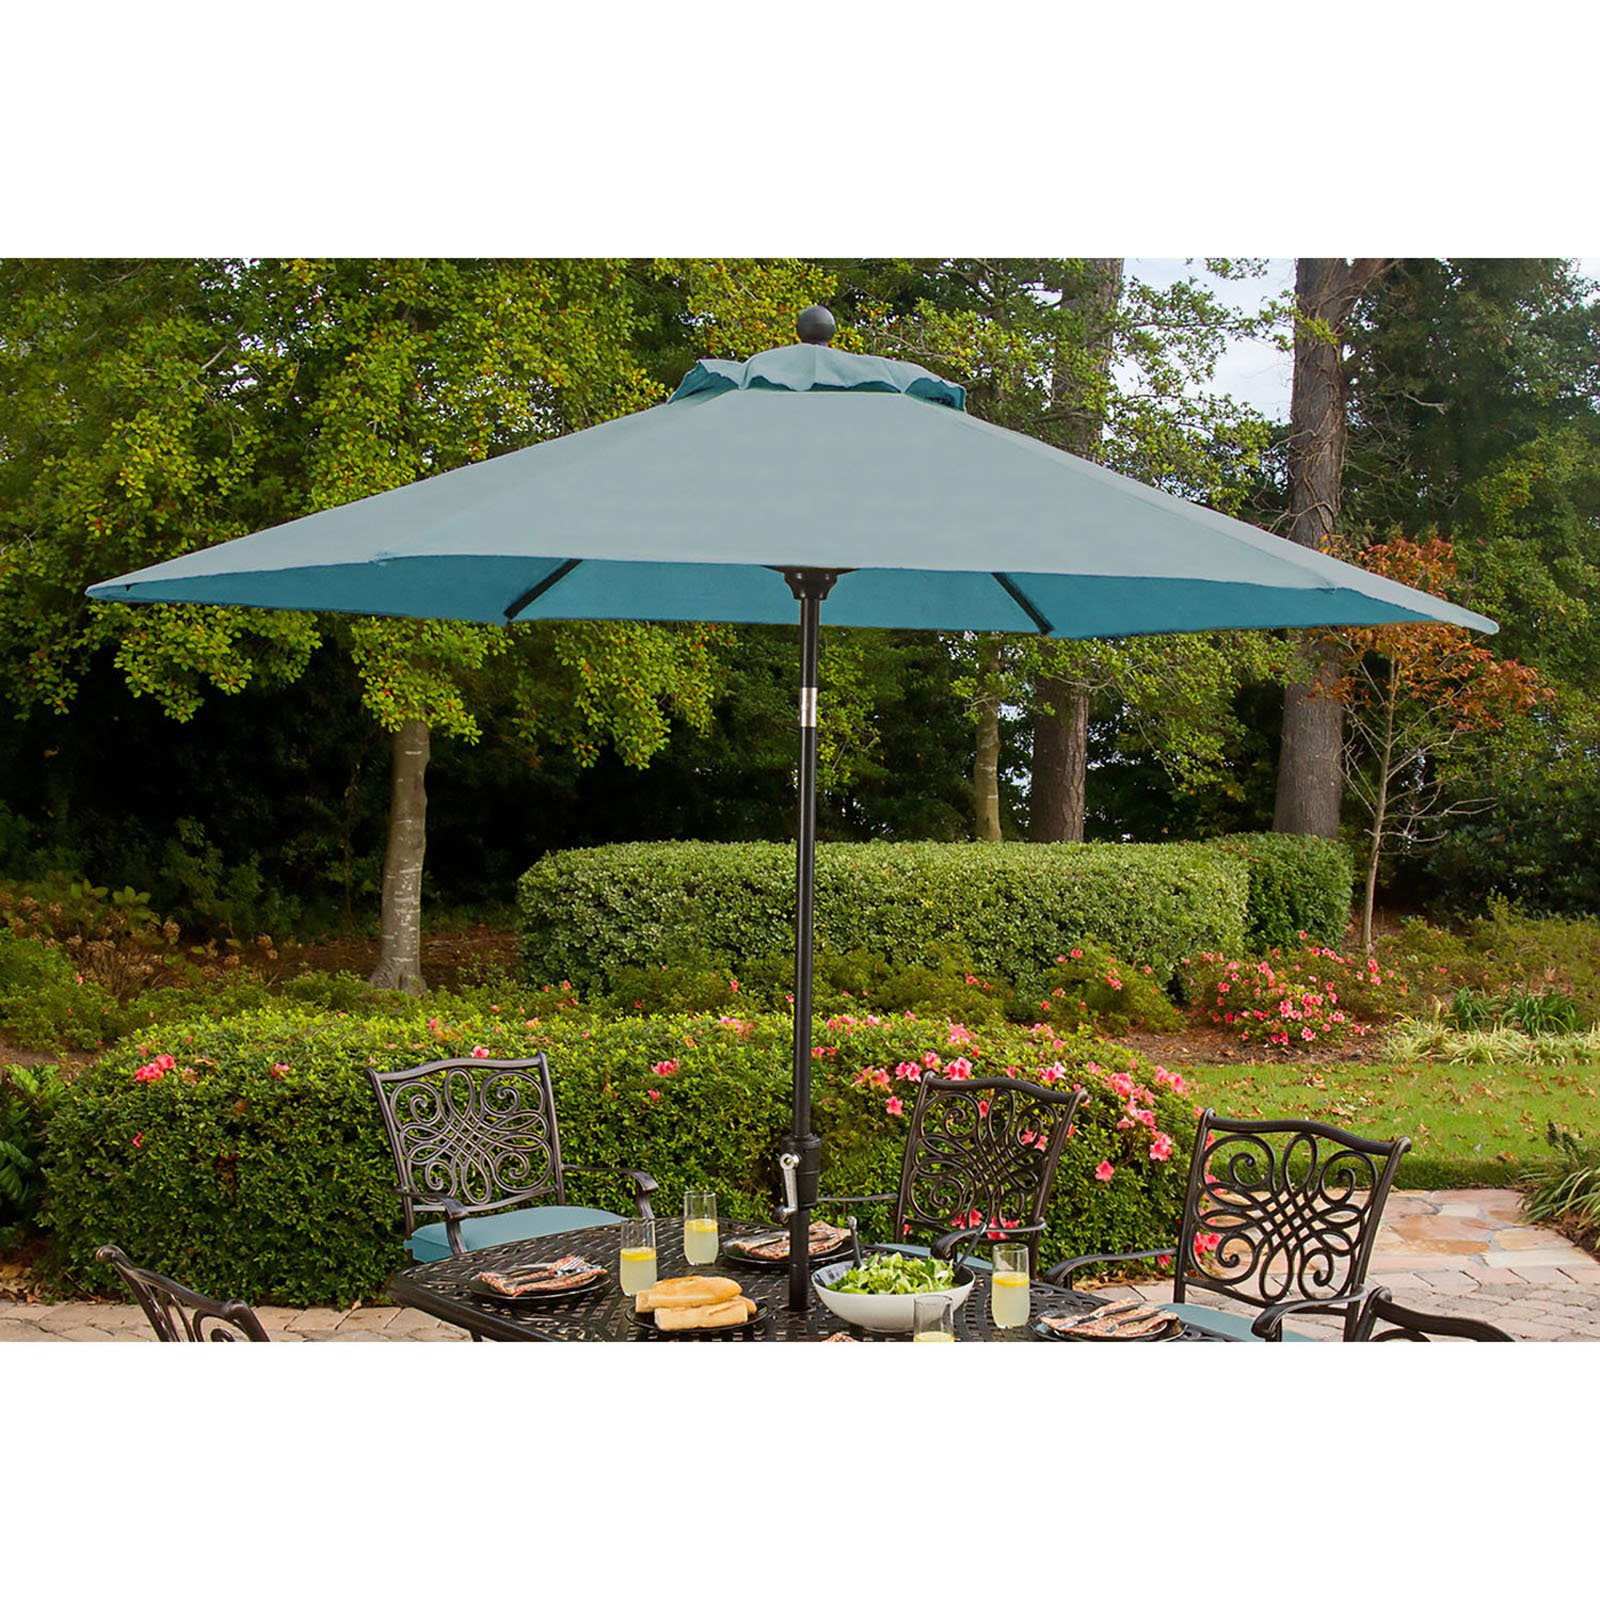 Hanover Outdoor Table Umbrella for the Traditions Dining Collection, Ocean Blue